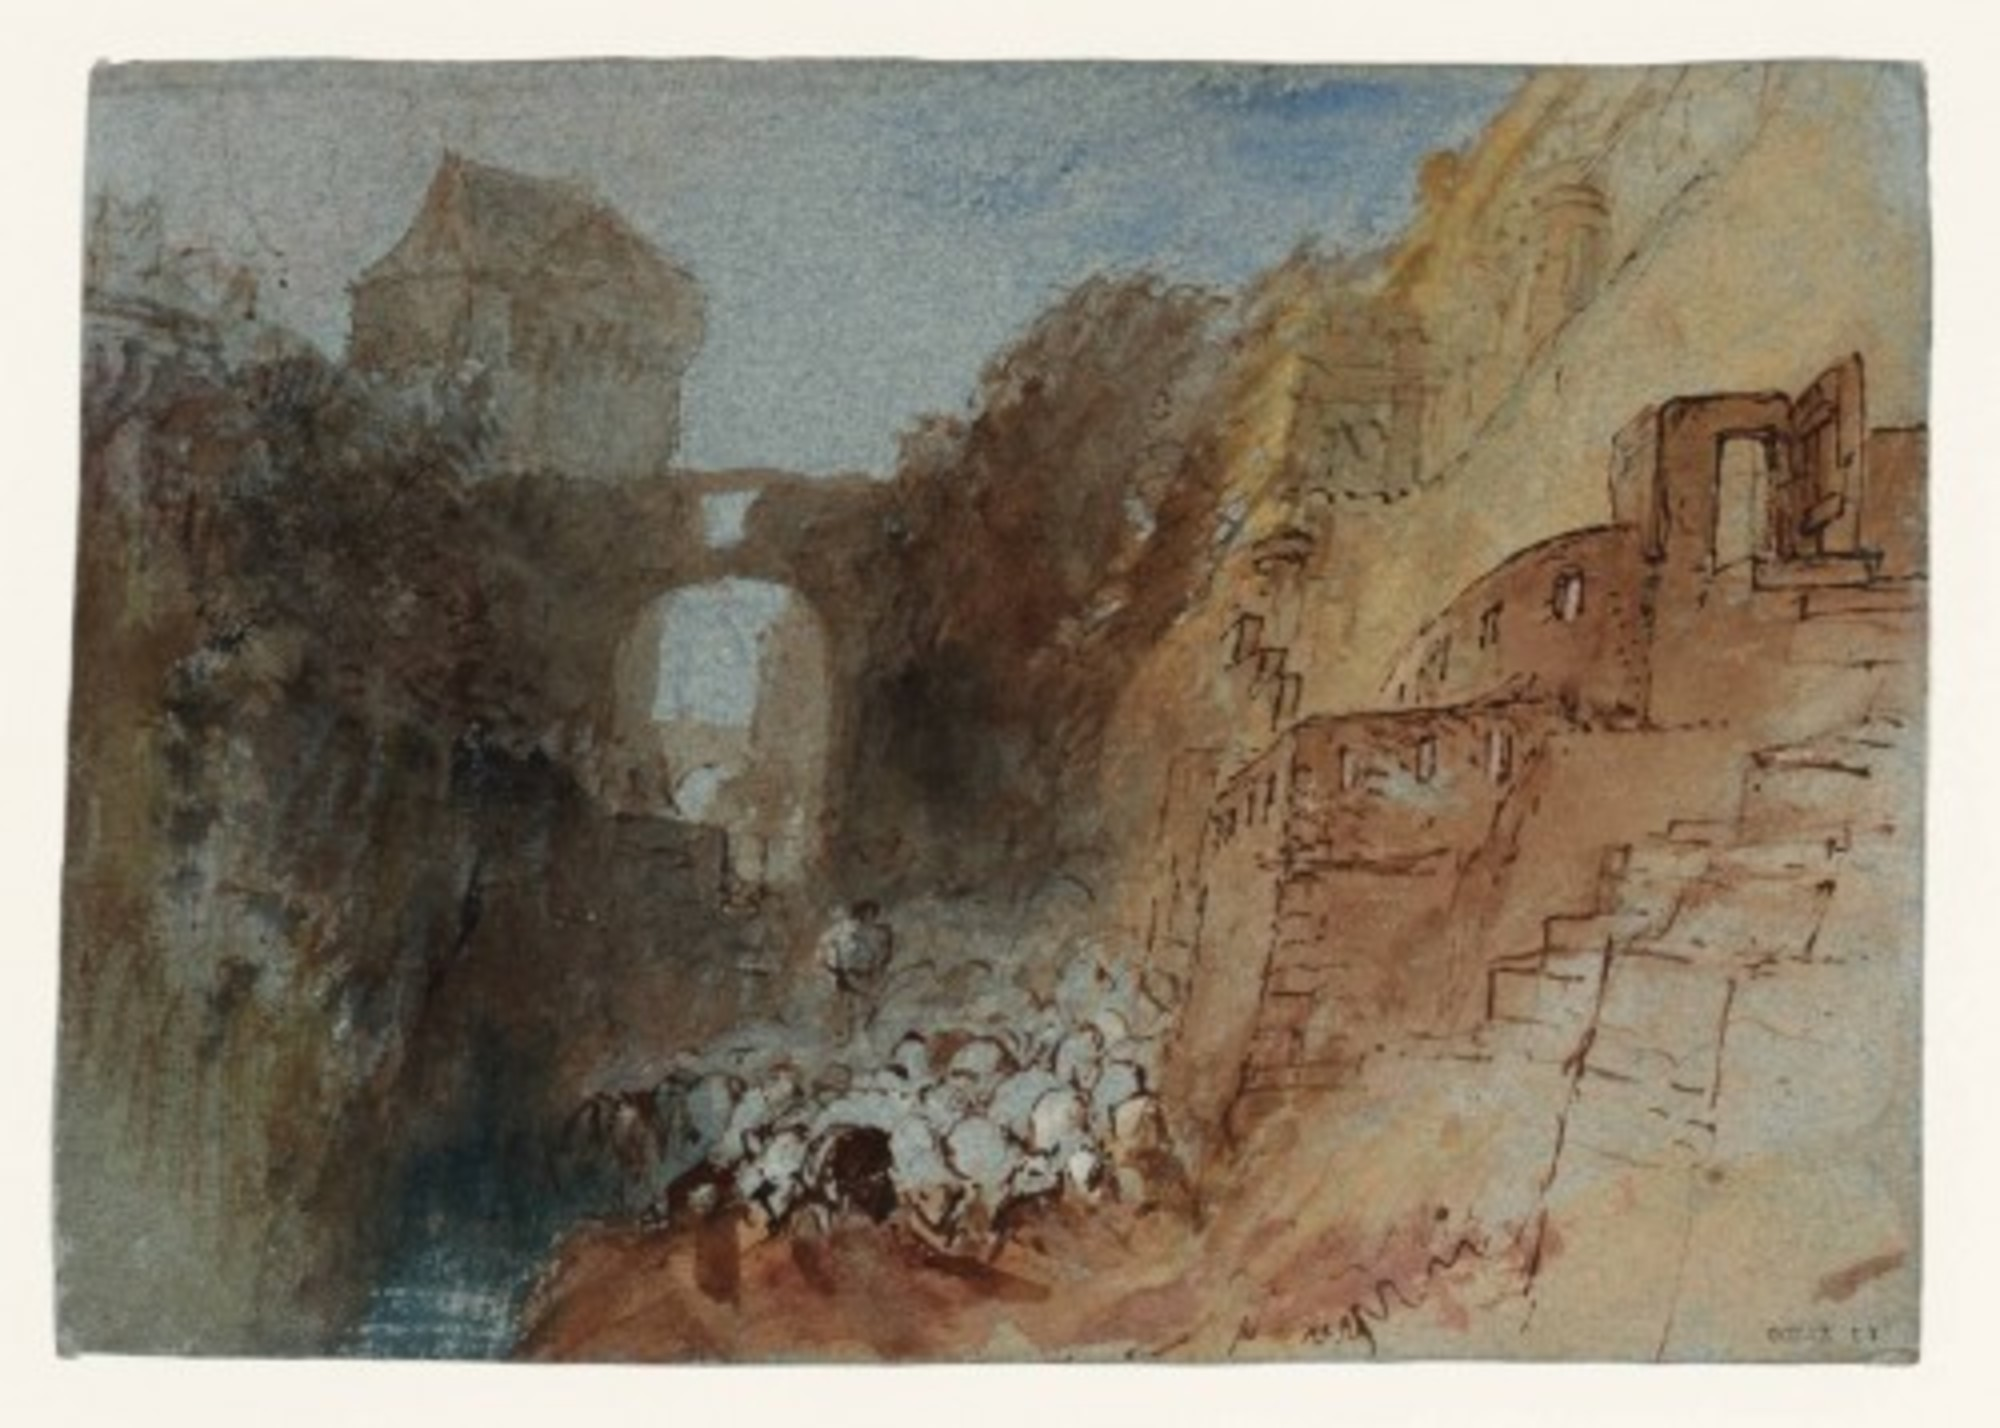 A-Herd-of-Sheep-at-Saumur-Below-the-Walls-of-the-Chateau-with-the-Tour-de-Papegault-to-the-Left-1826-28.jpg